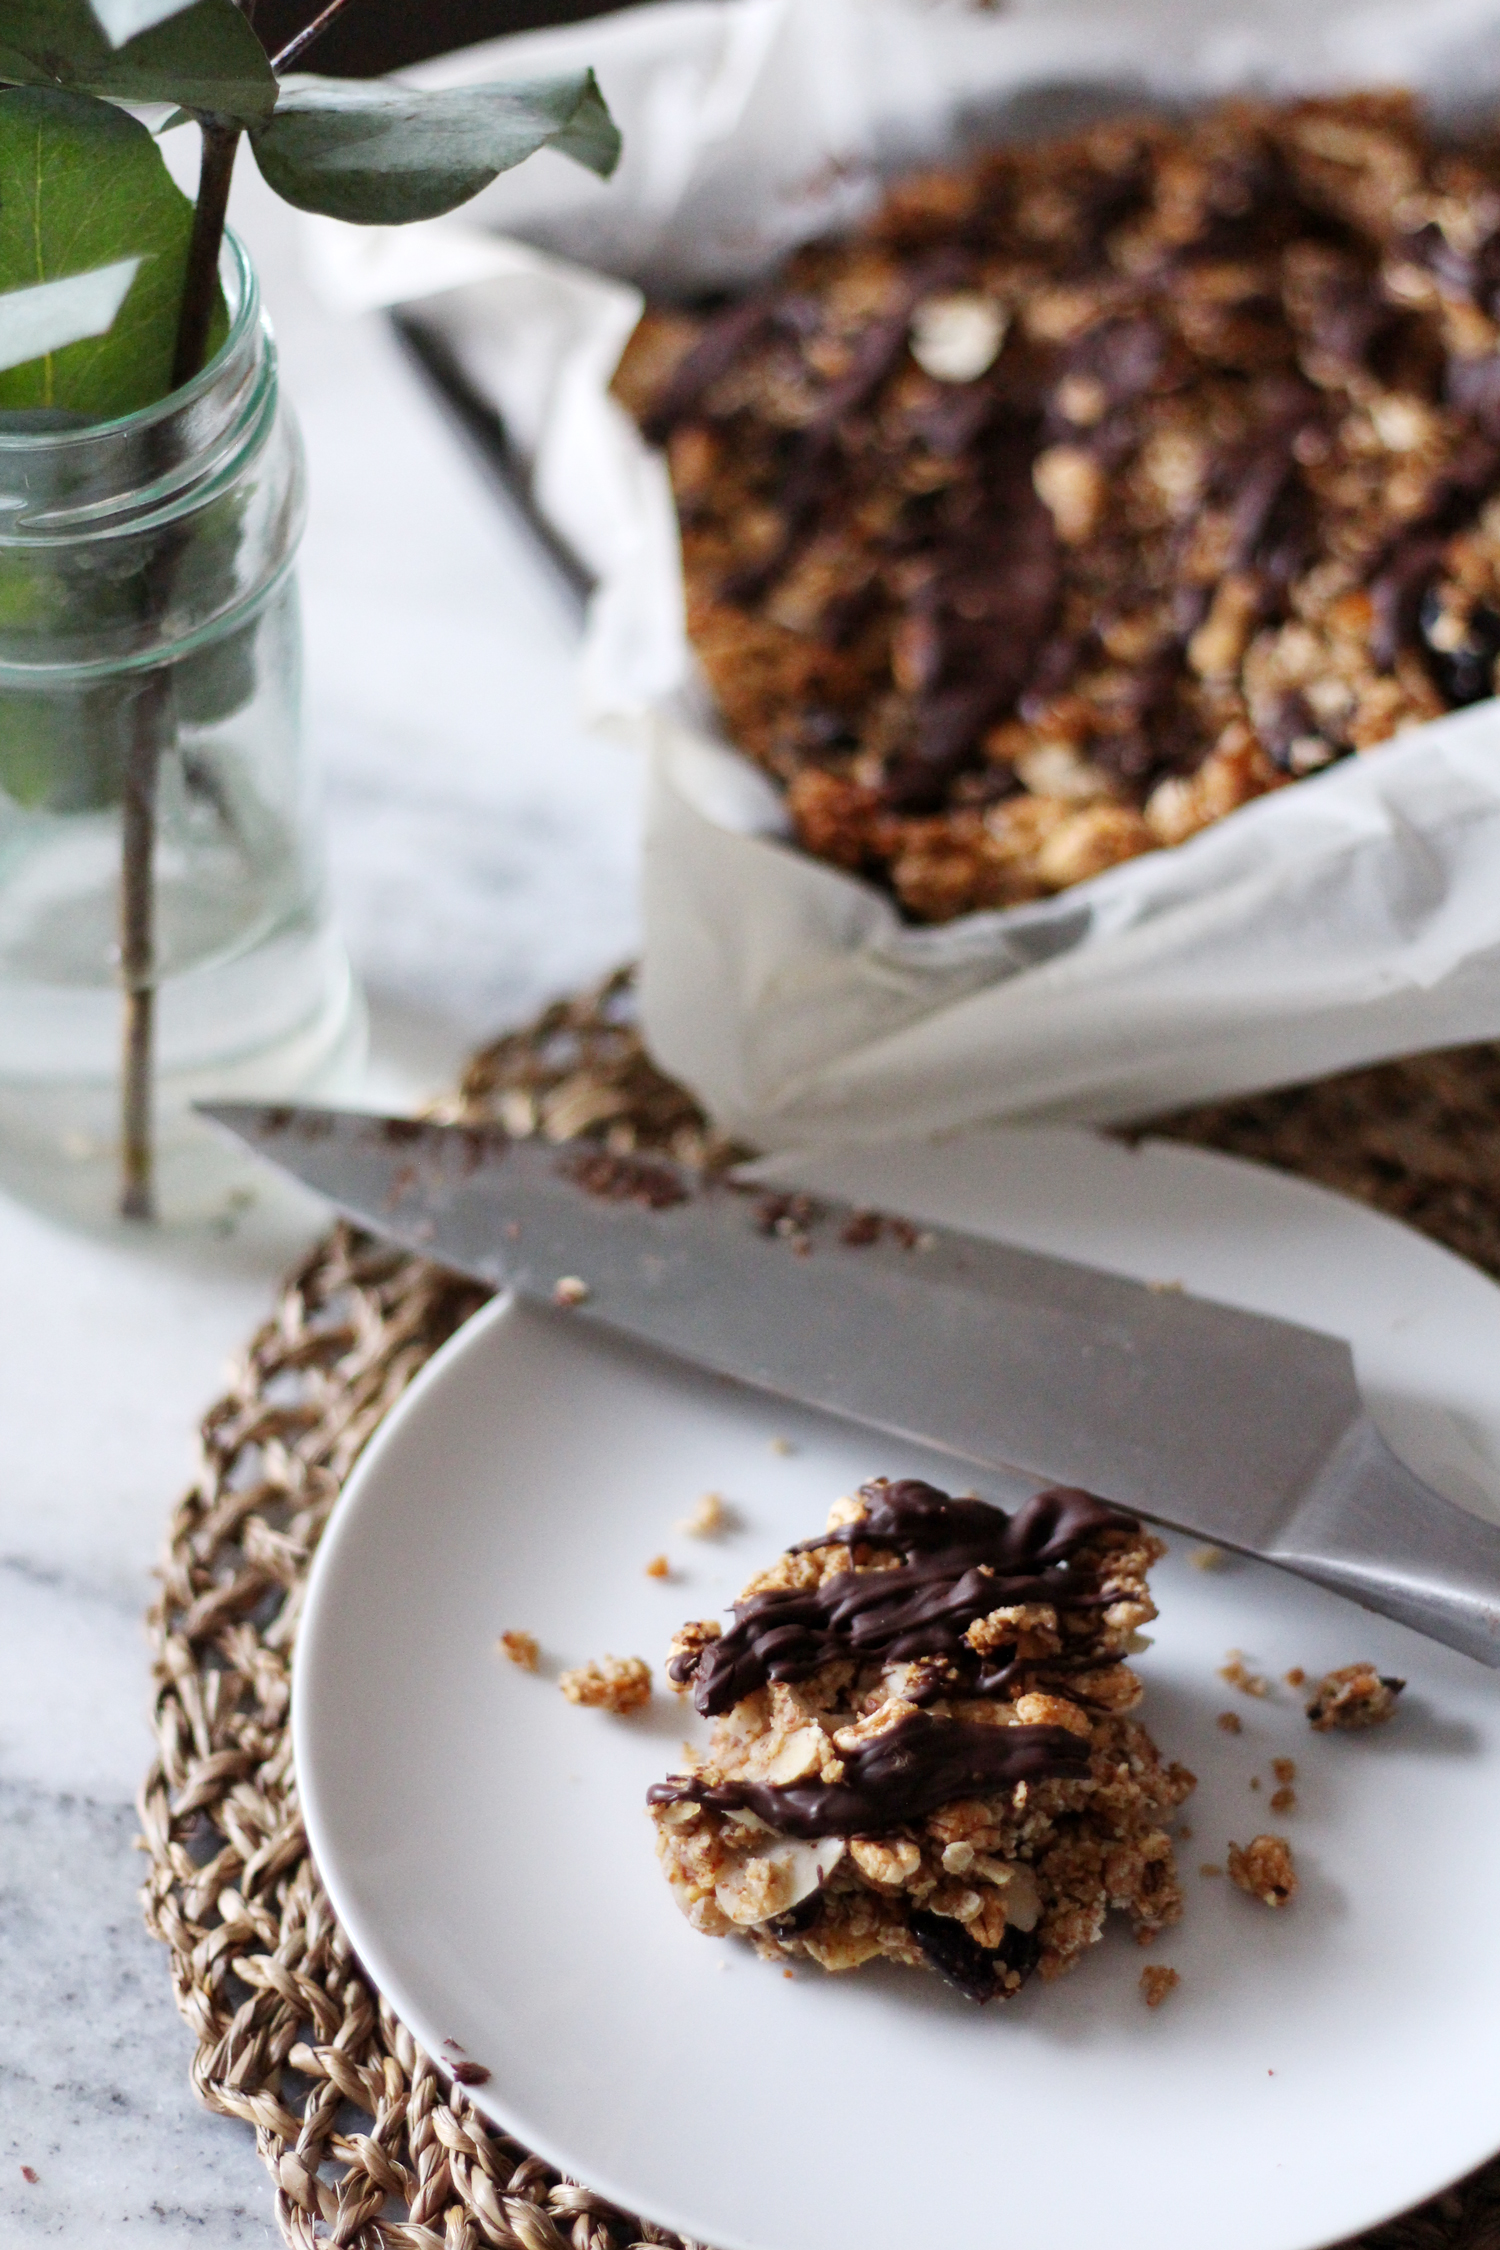 chewy-oatmeal-breakfast-bar-rolled-oats-fruit-nuts-recipe-7